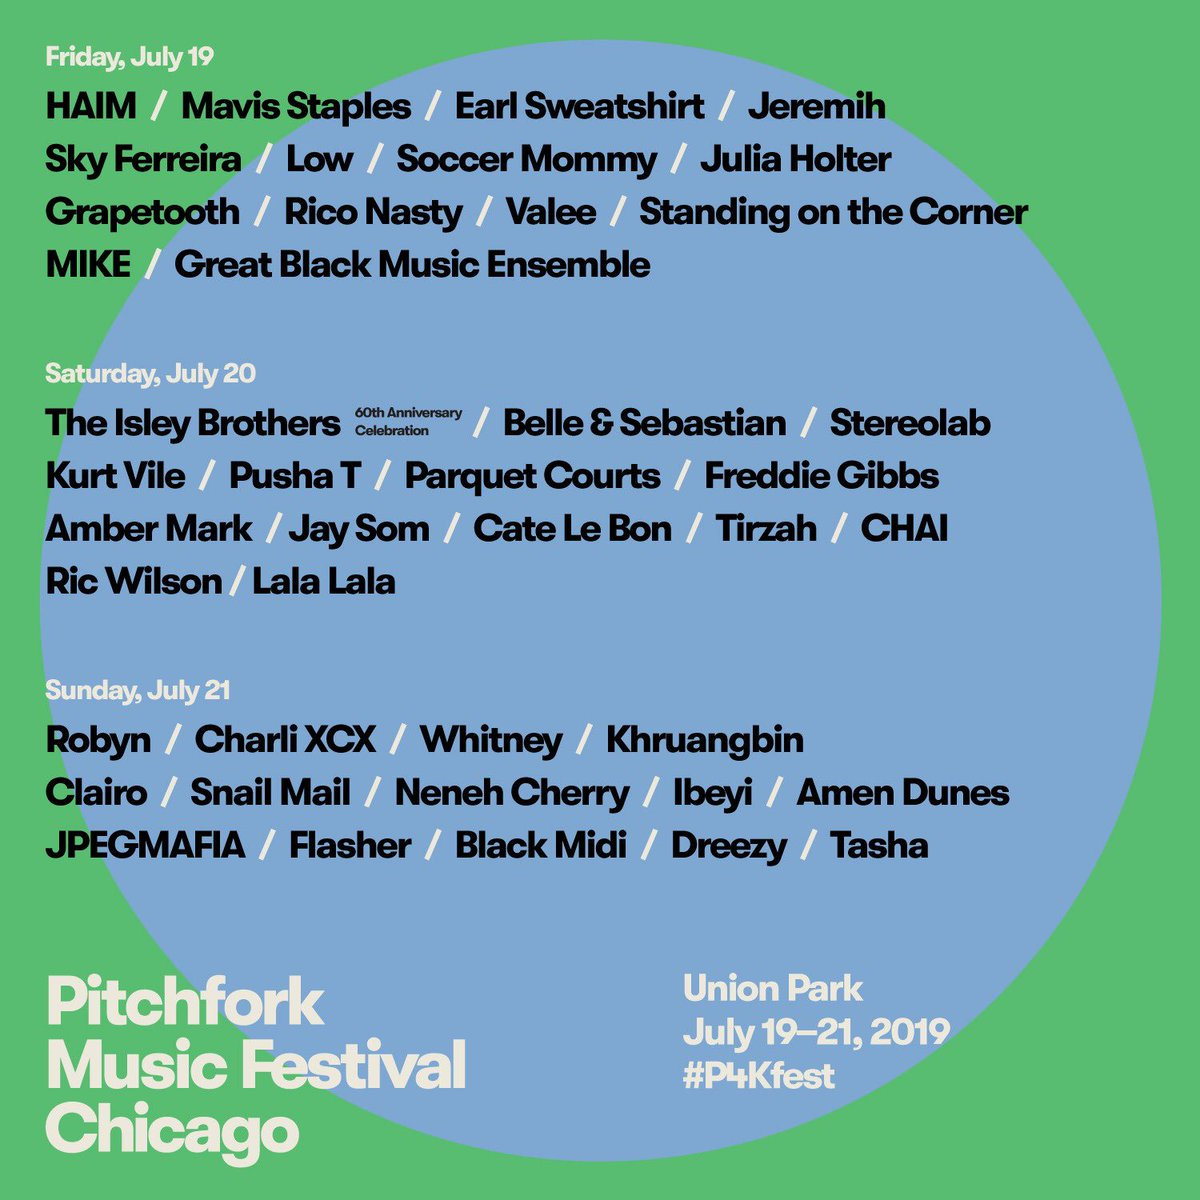 playing @pitchfork festival on July 21st might bring out some special guests...... see u there ???? https://t.co/NU5vDsozJy